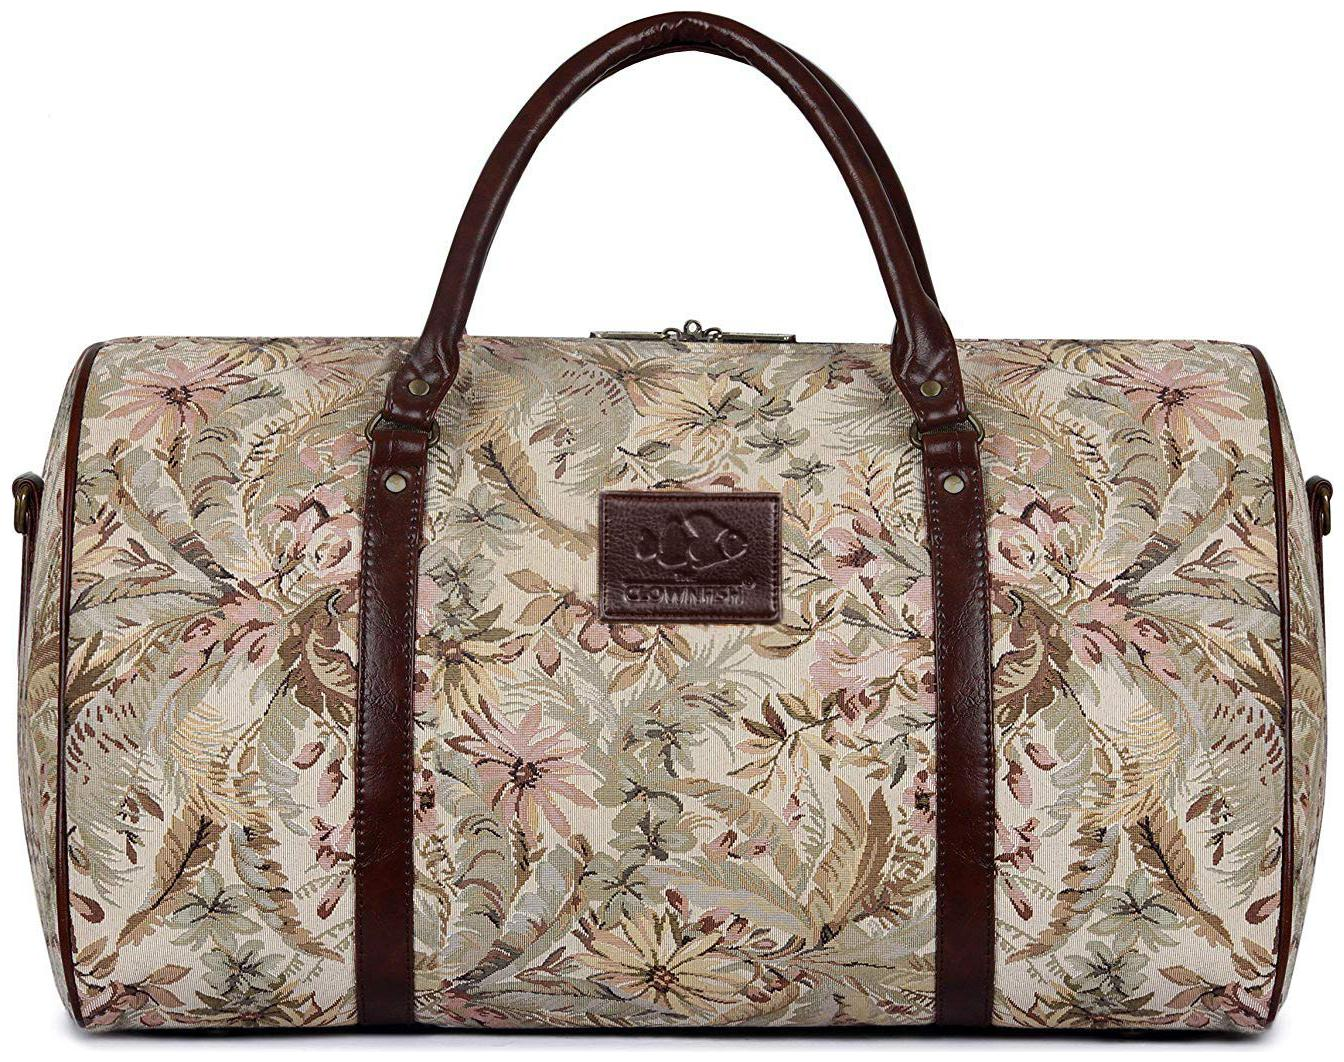 The Clownfish Forest 40 litres Tapestry Fabric Beige Travel Duffle Bag Men Travel Duffel Bag Luggage Daffel Bags Air Bags Luggage Bag Travelling Bag b